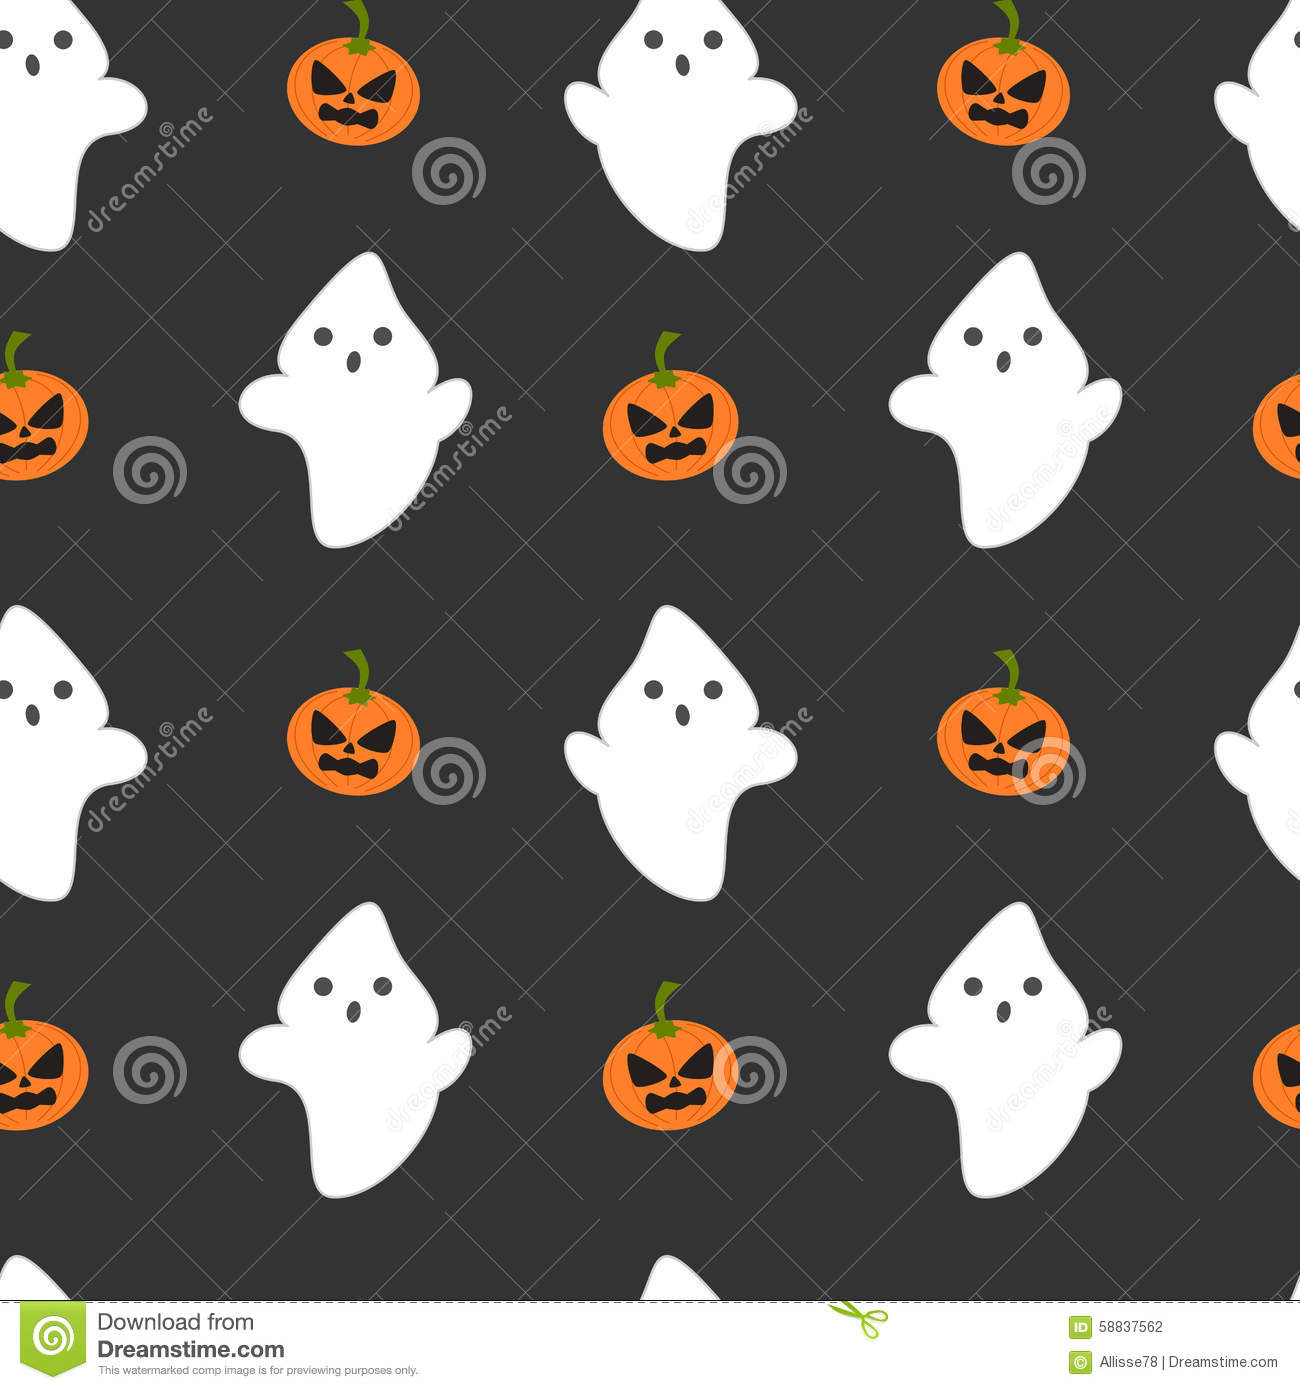 how to draw a ghost on a pumpkin